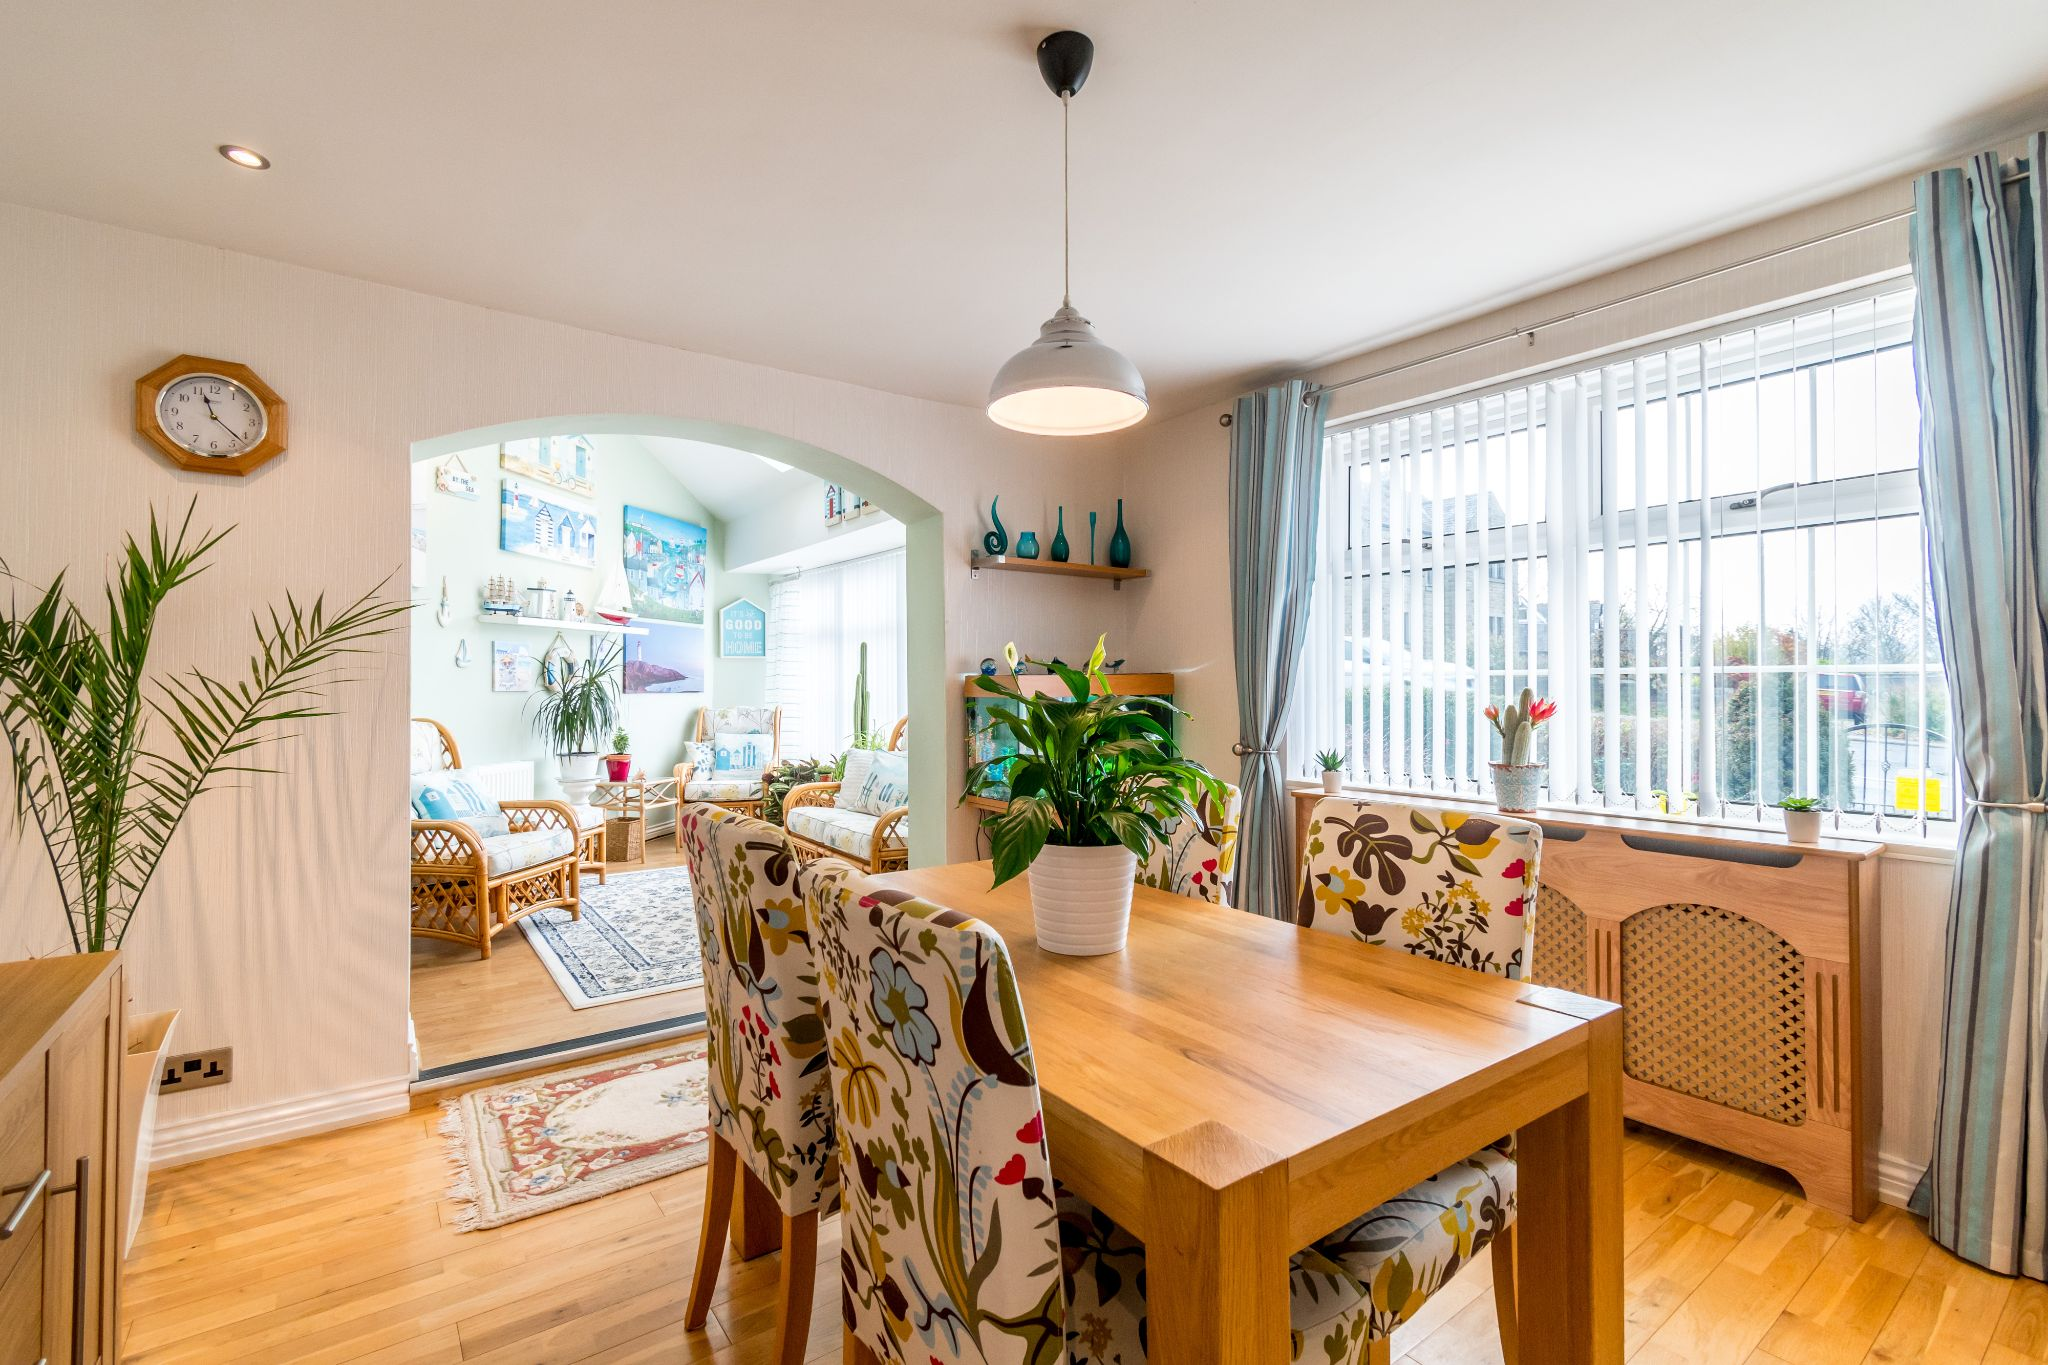 3 bedroom detached bungalow For Sale in Hove Edge - Dining room looking into the sun room